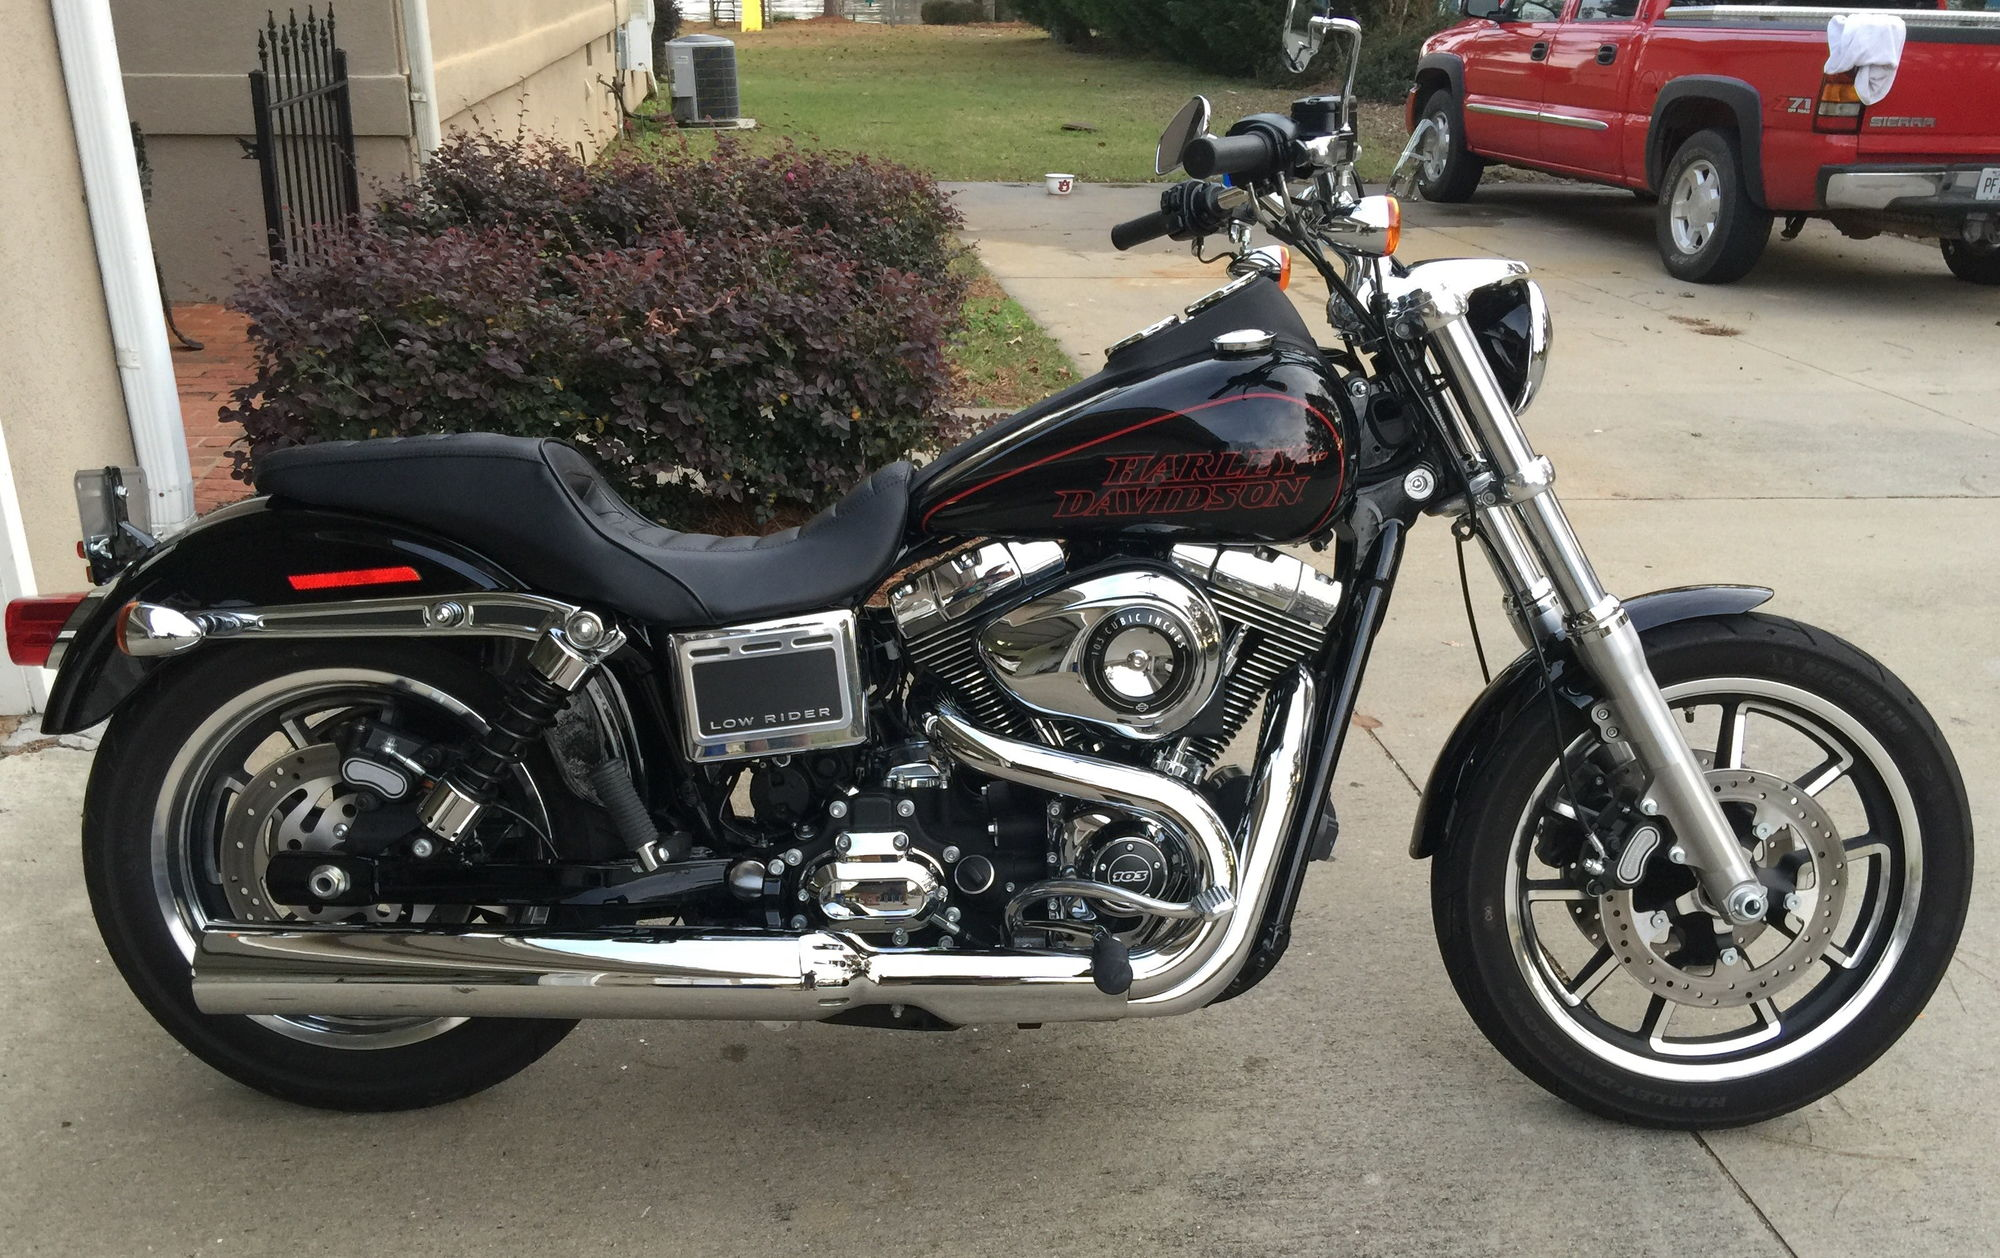 Harley Dyna Motorcycles For Sale Ga >> 2015 Dyna Low Rider For Sale - Harley Davidson Forums